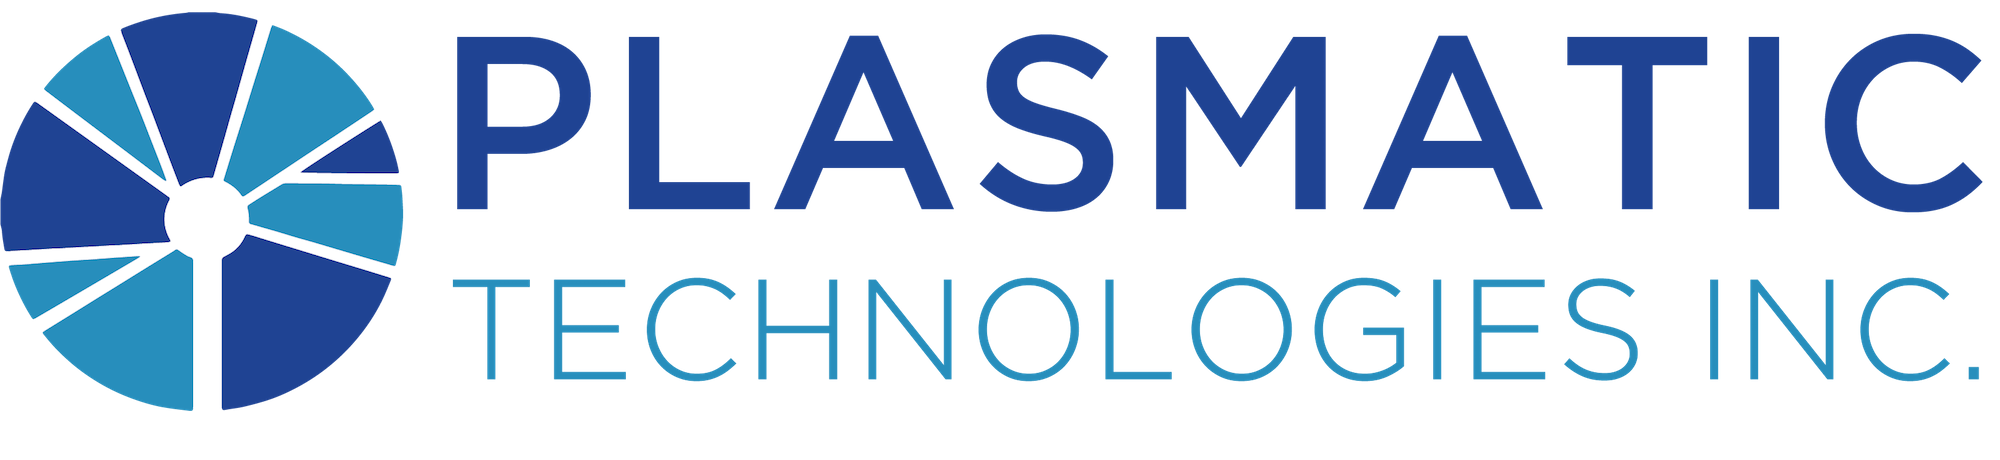 Plasmatic Technologies Inc. Bolsters Advisory Team with Insurance Industry Expertise